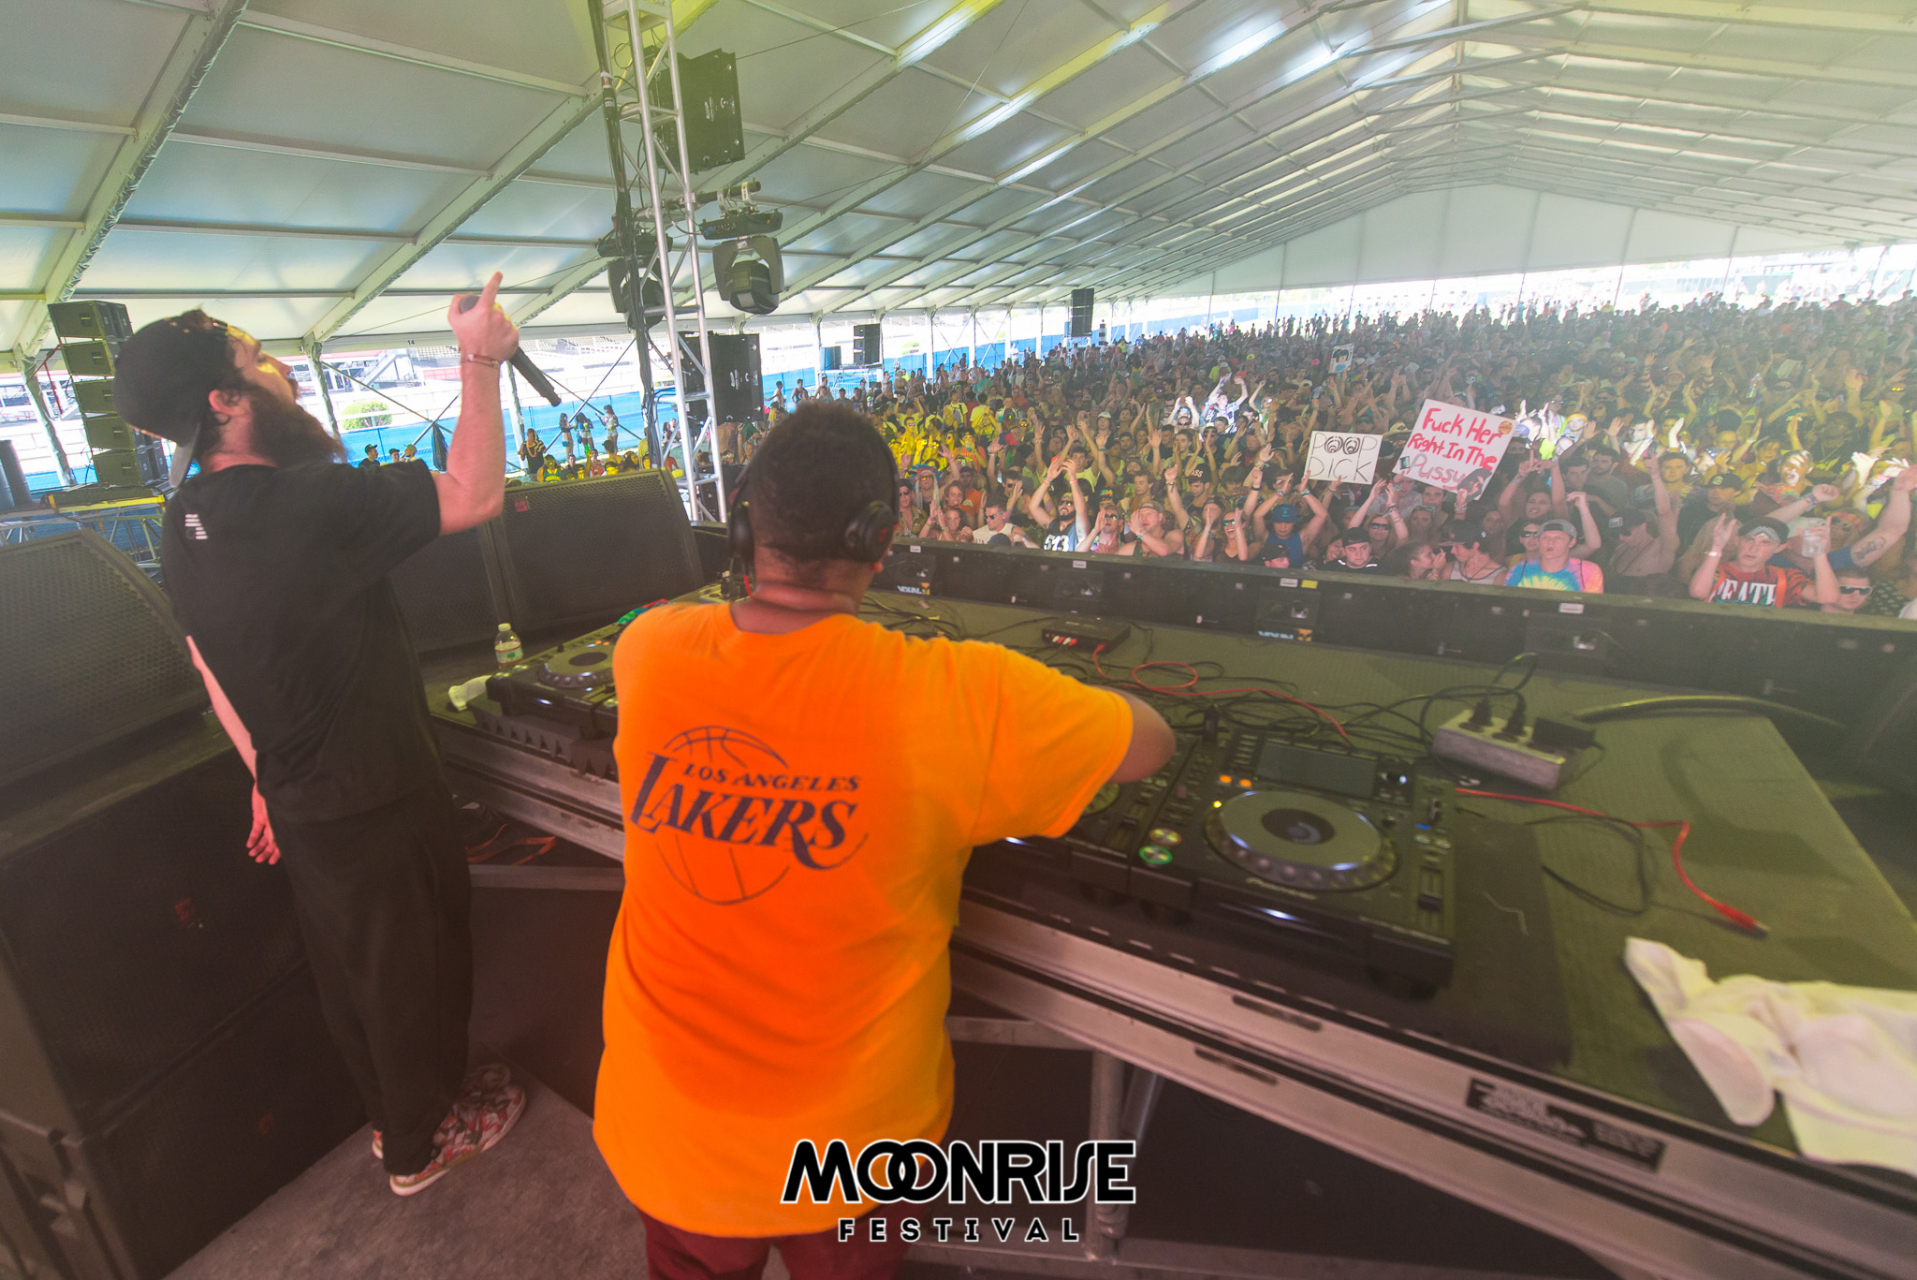 Moonrise_day2-74